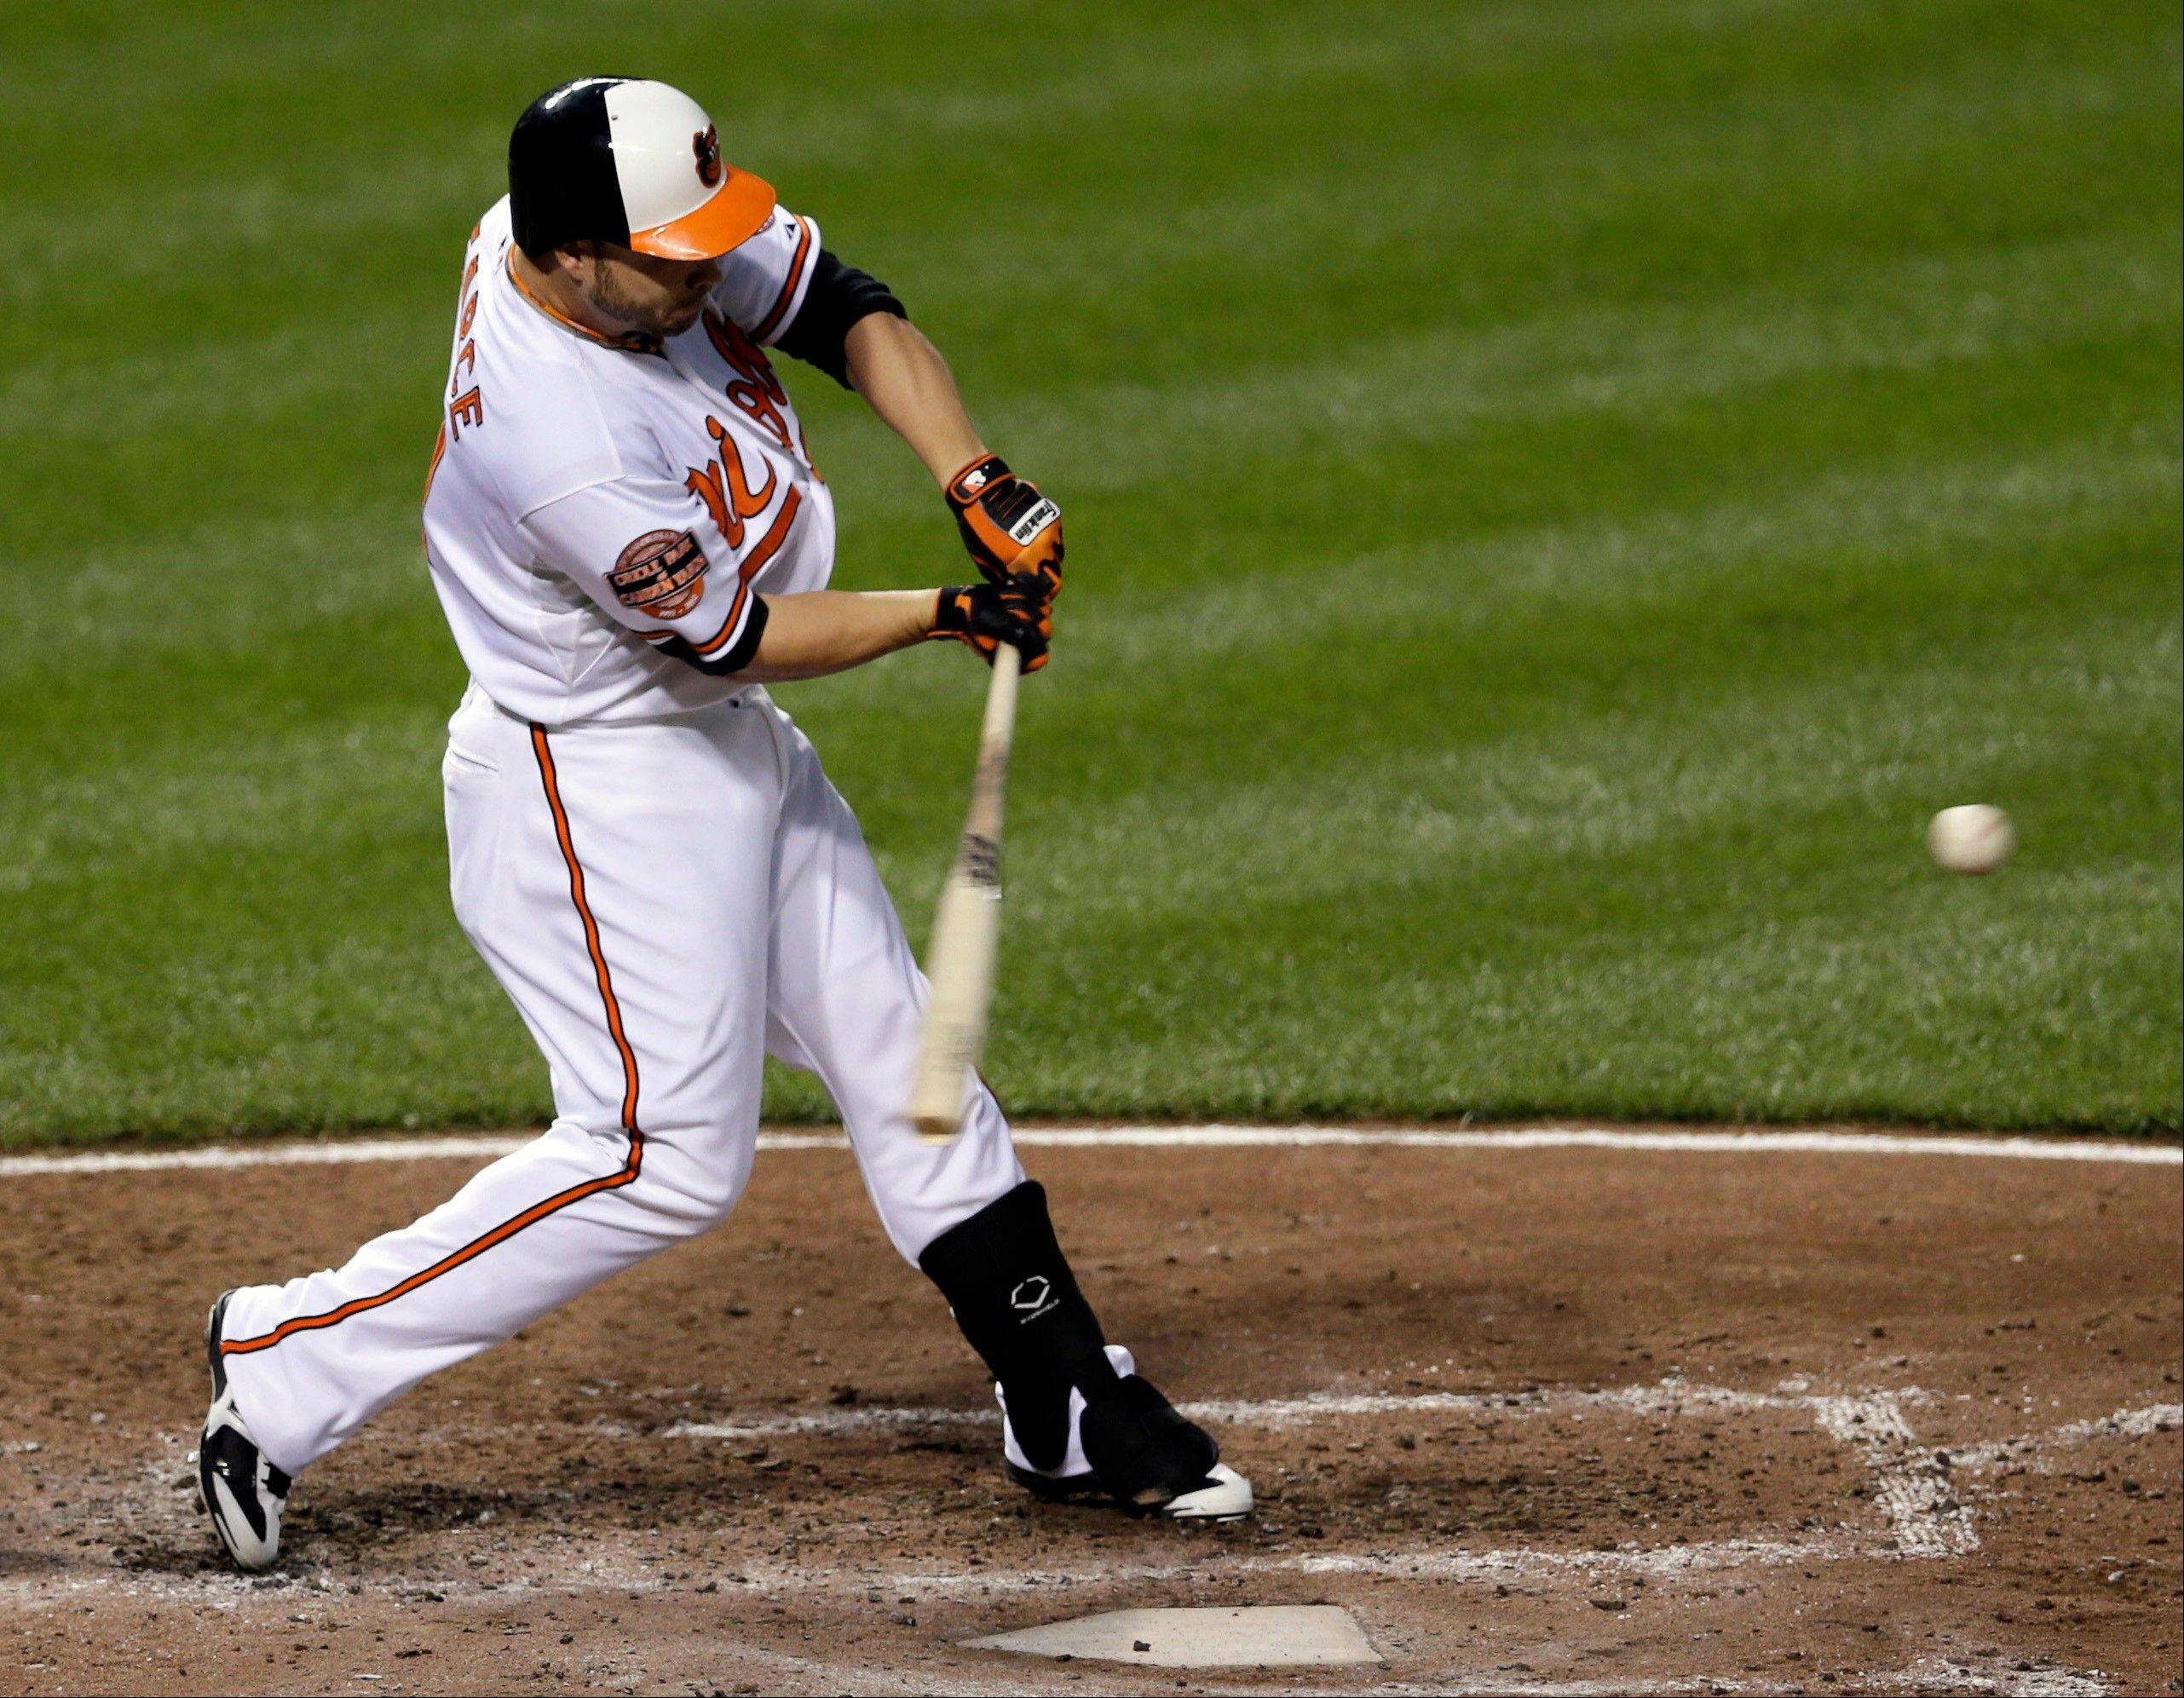 The Orioles' Steve Pearce hits a three-run home run in the fourth inning Thursday against the Pittsburgh Pirates in Baltimore.